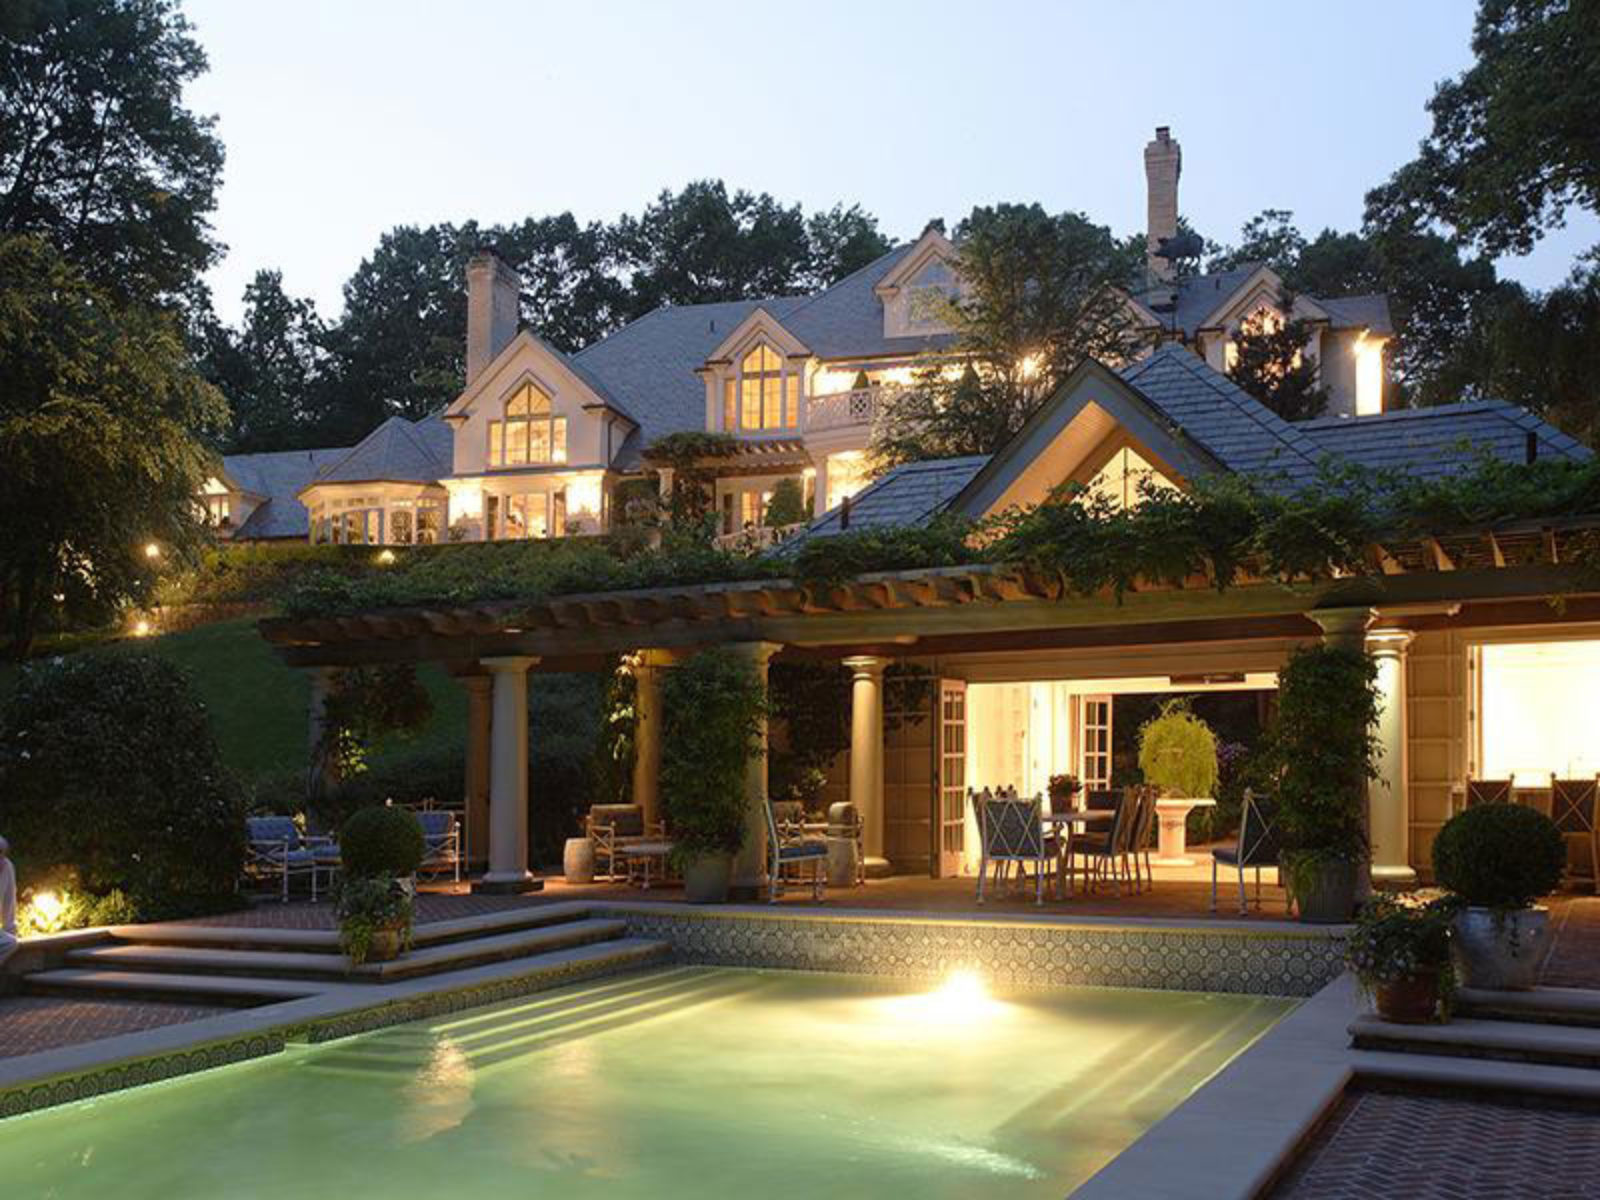 Linwood Lakefront Property in Armonk